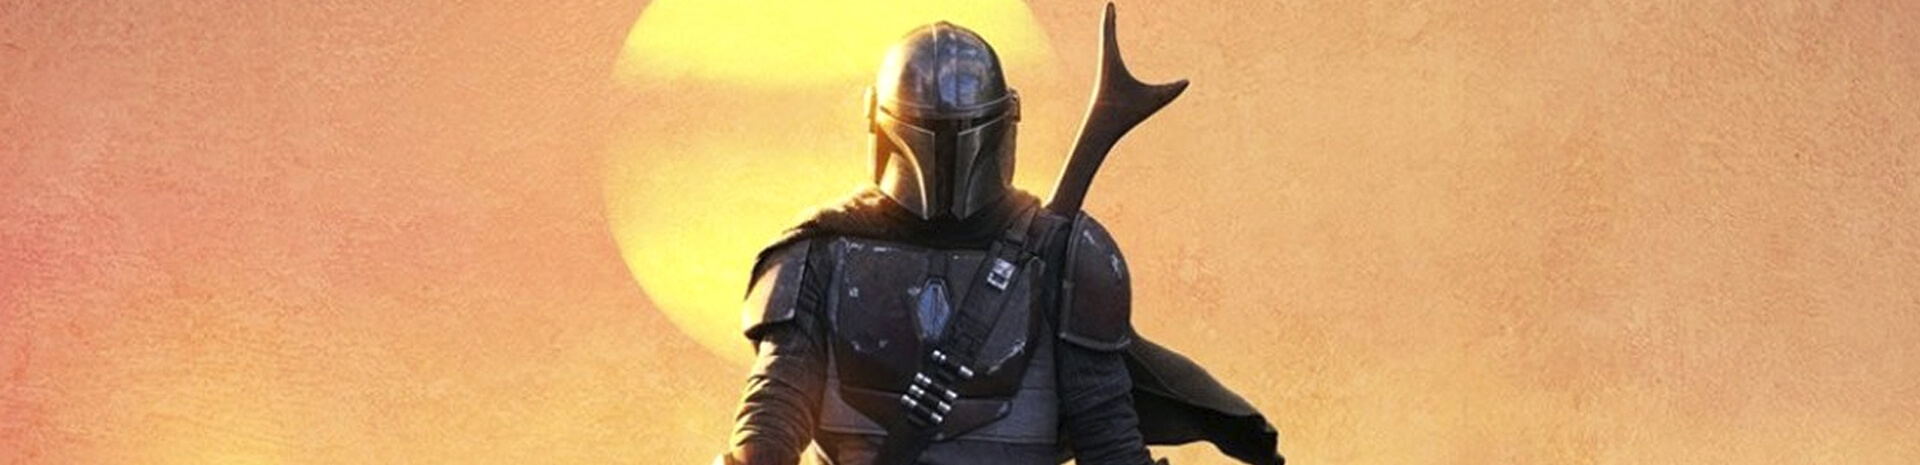 Mandalorian walking in sunset